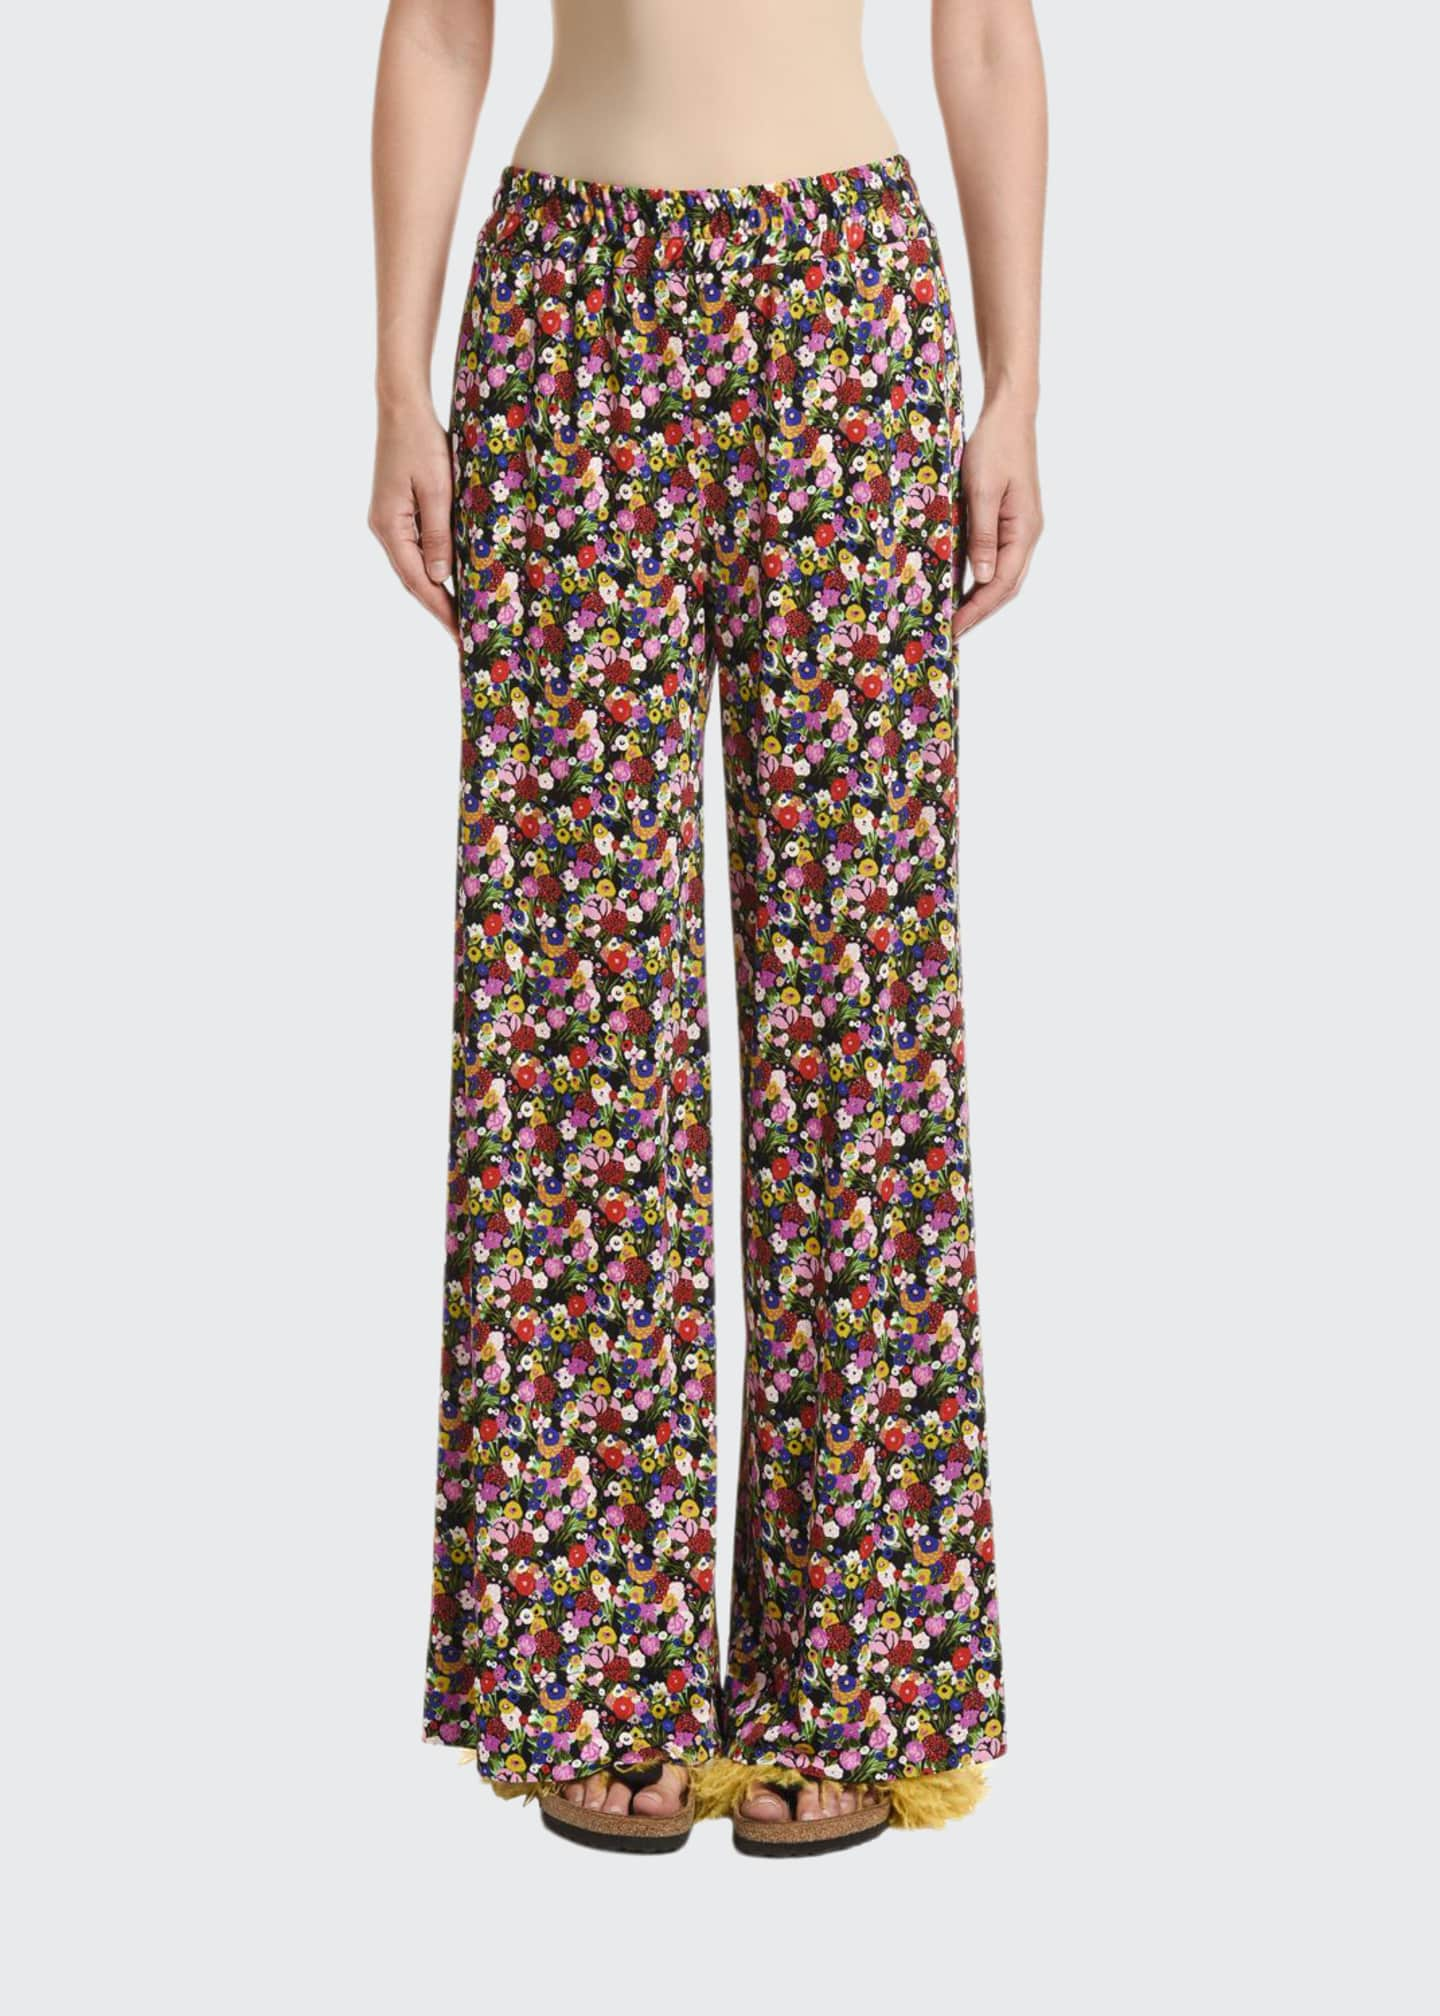 Double J Calico Floral Matte Jersey Palazzo Pants